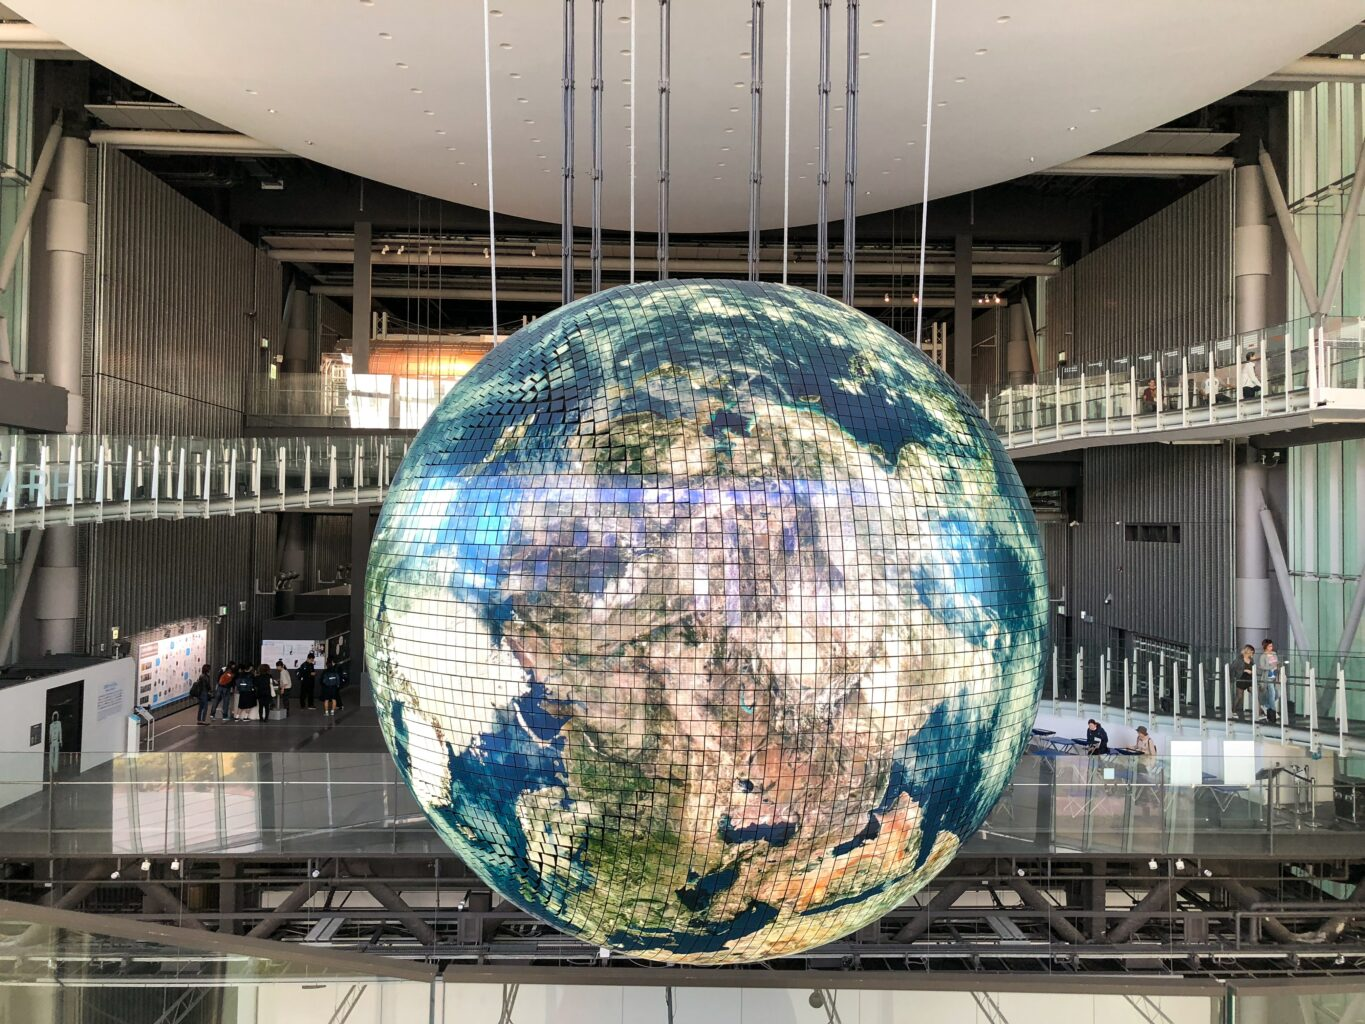 giant globe inside building